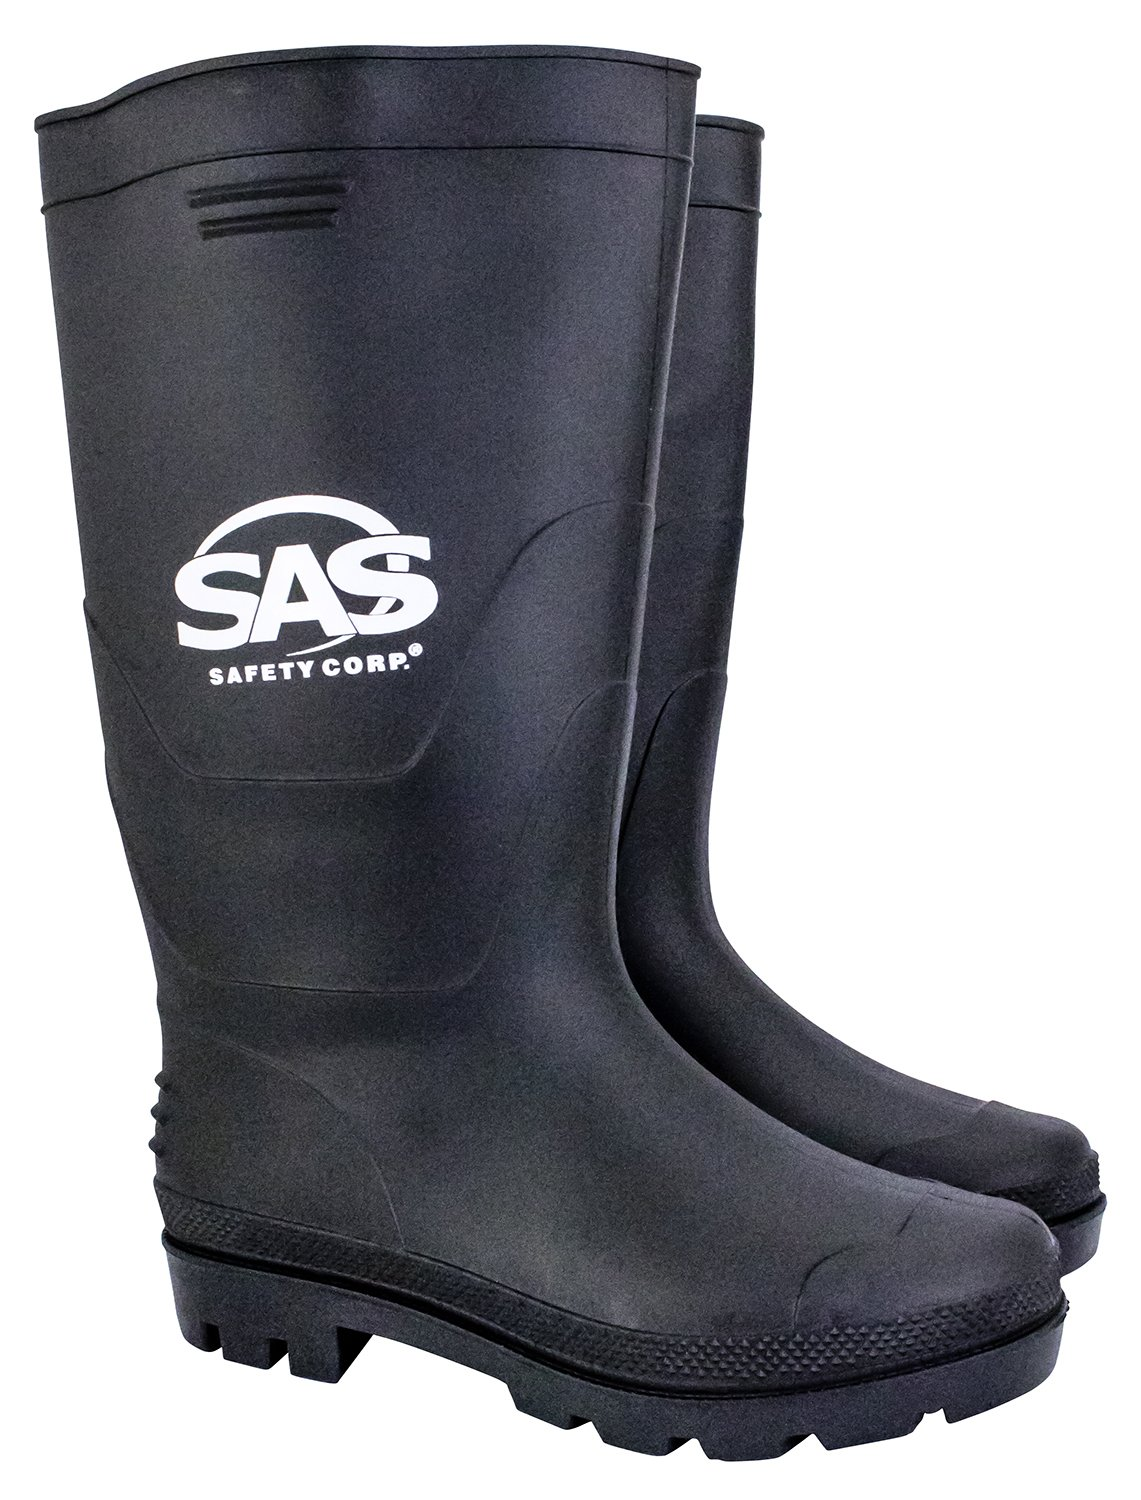 SAS Safety 7130-07 Rubber Work Boots with Non-Steel Toe, 16-Inch Tall, Size-7 by SAS Safety